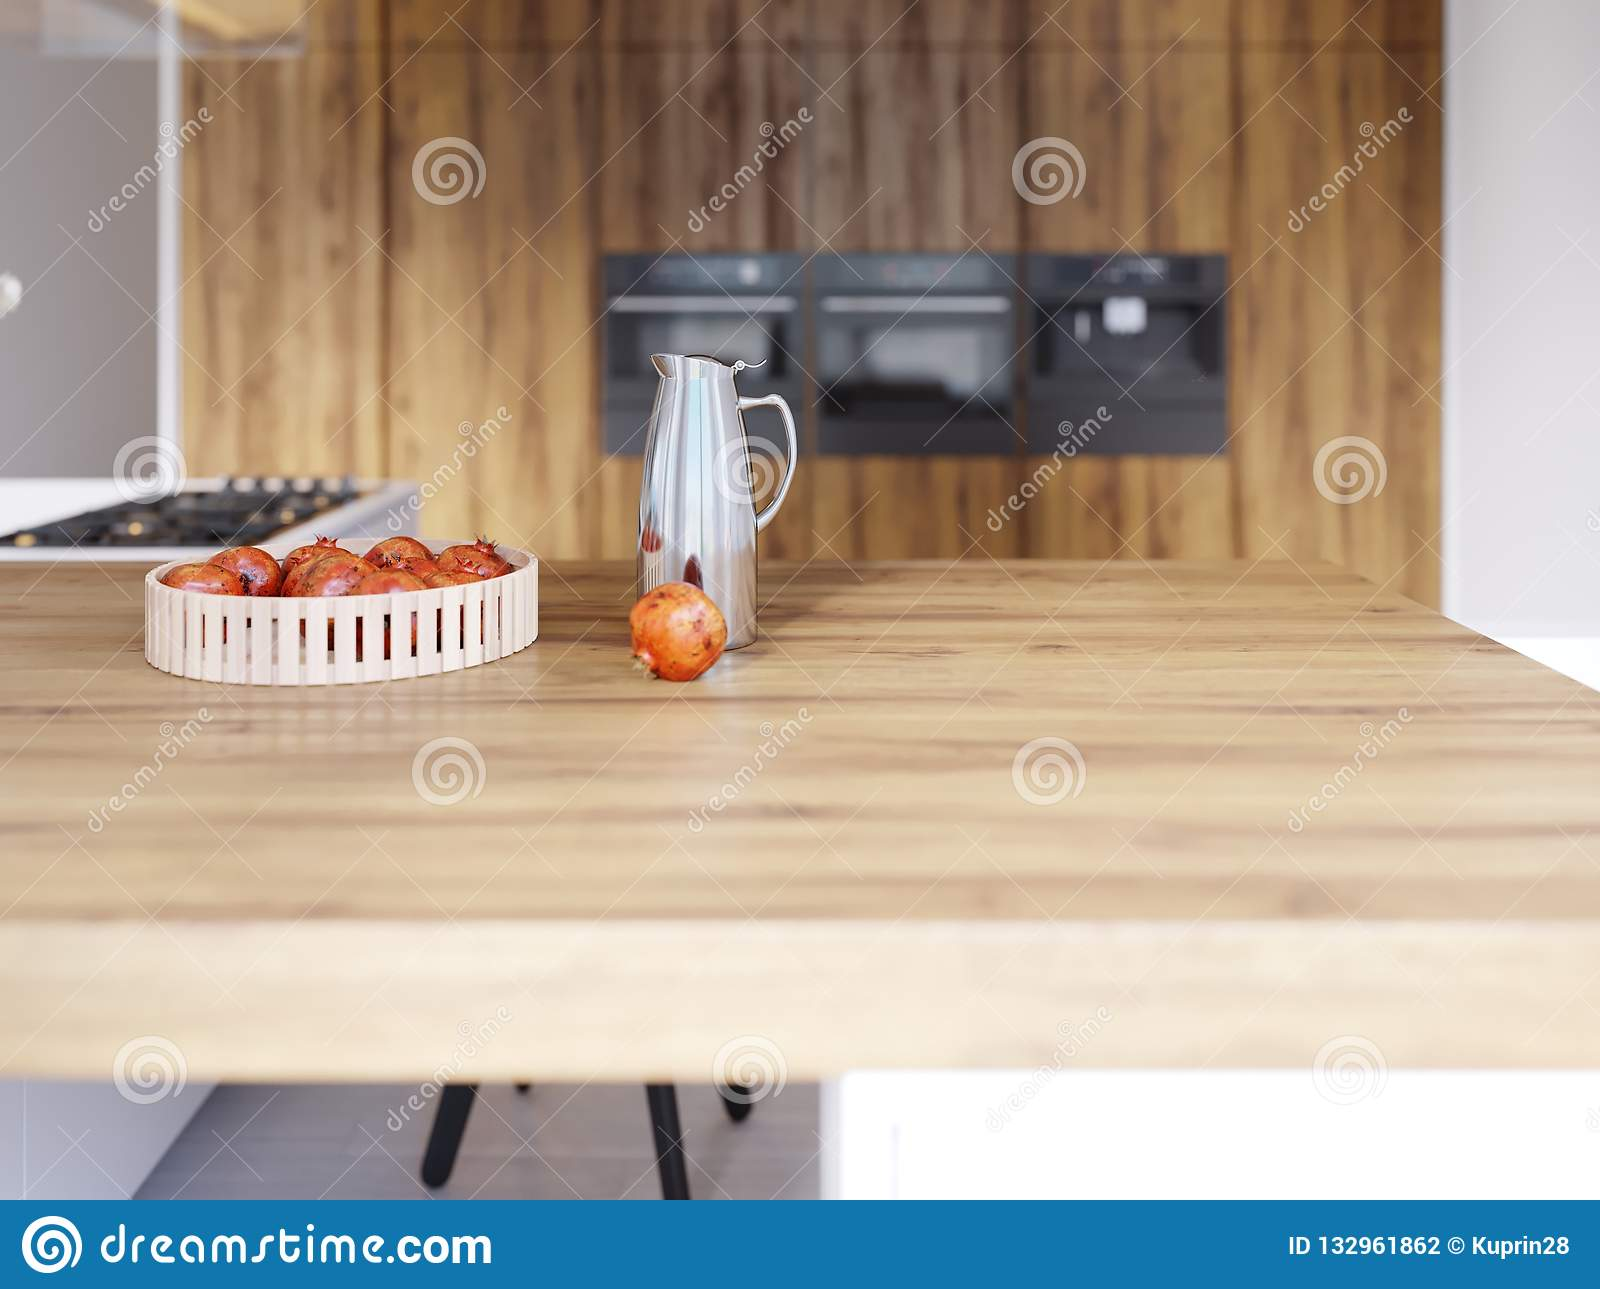 The Decor On The Wooden Dining Table And Bar. Depth Of Field